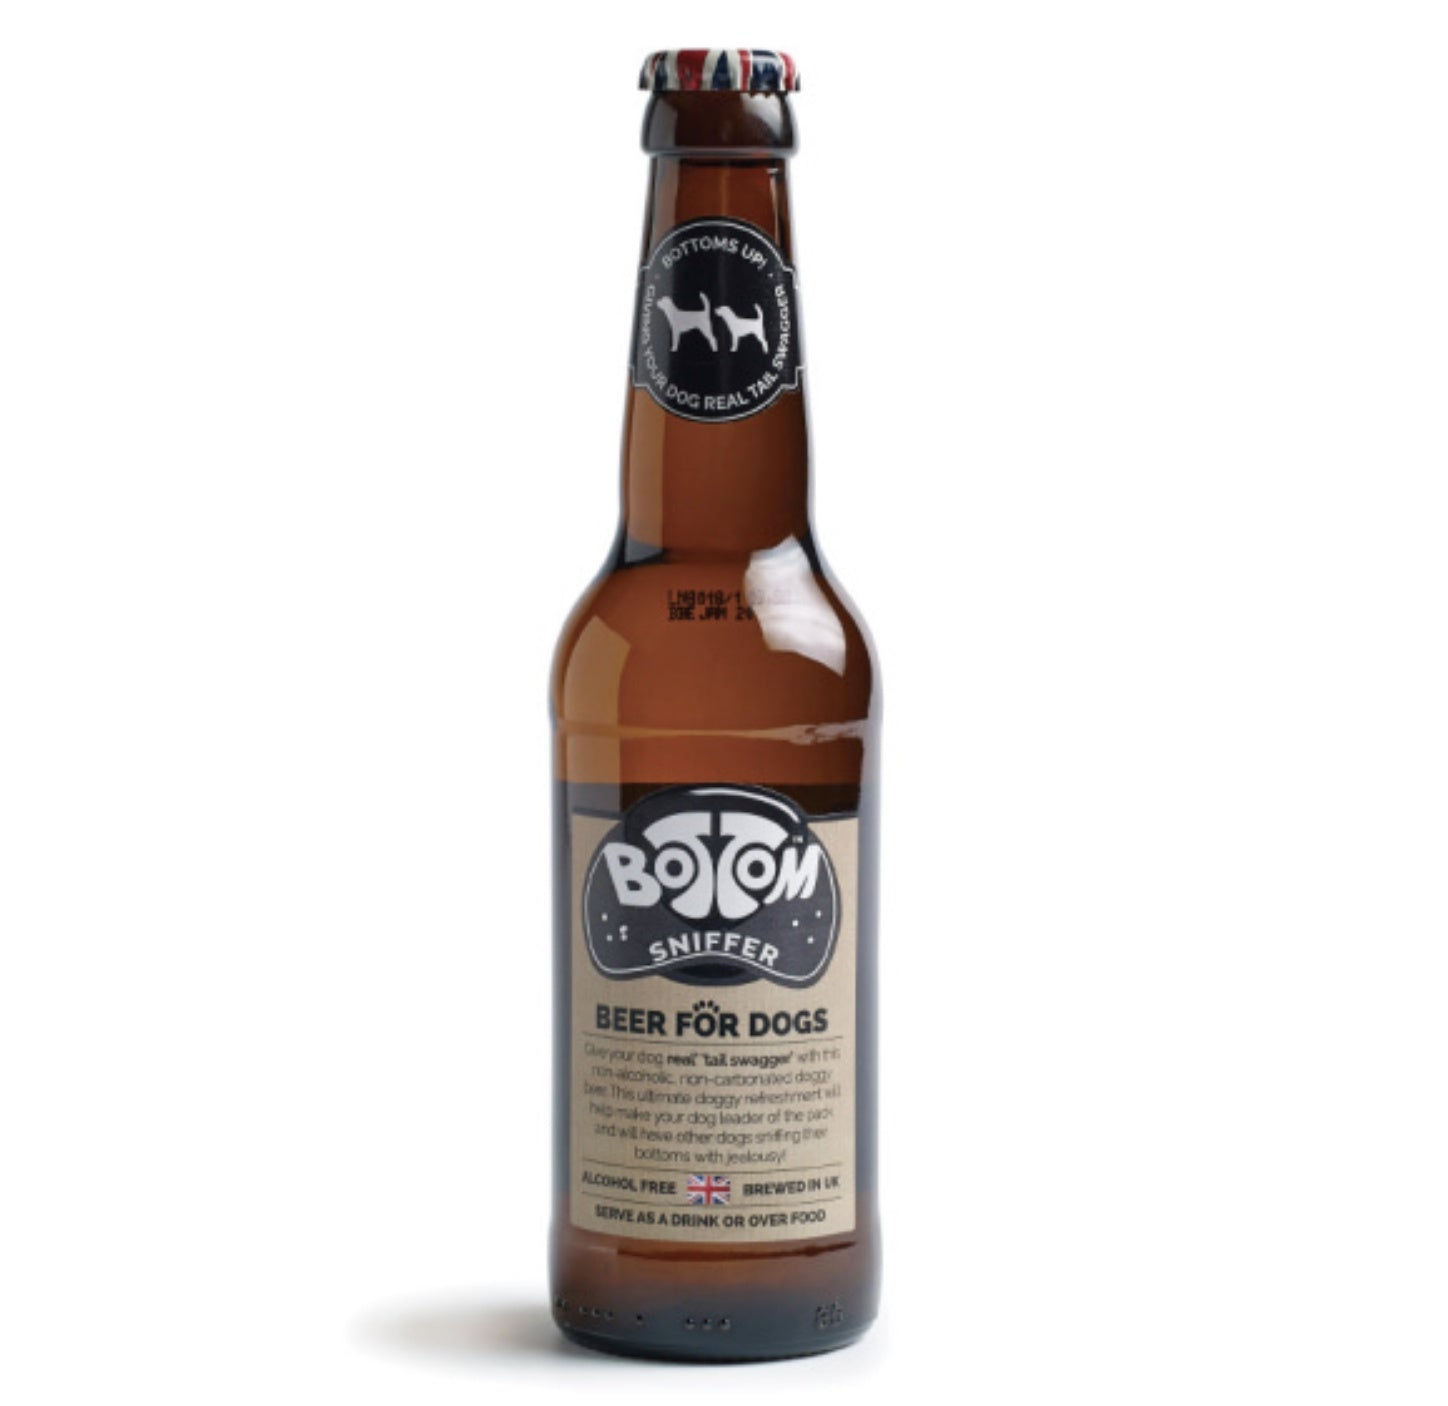 WOOF & BREW BOTTOM SNIFFER BEER 330ML